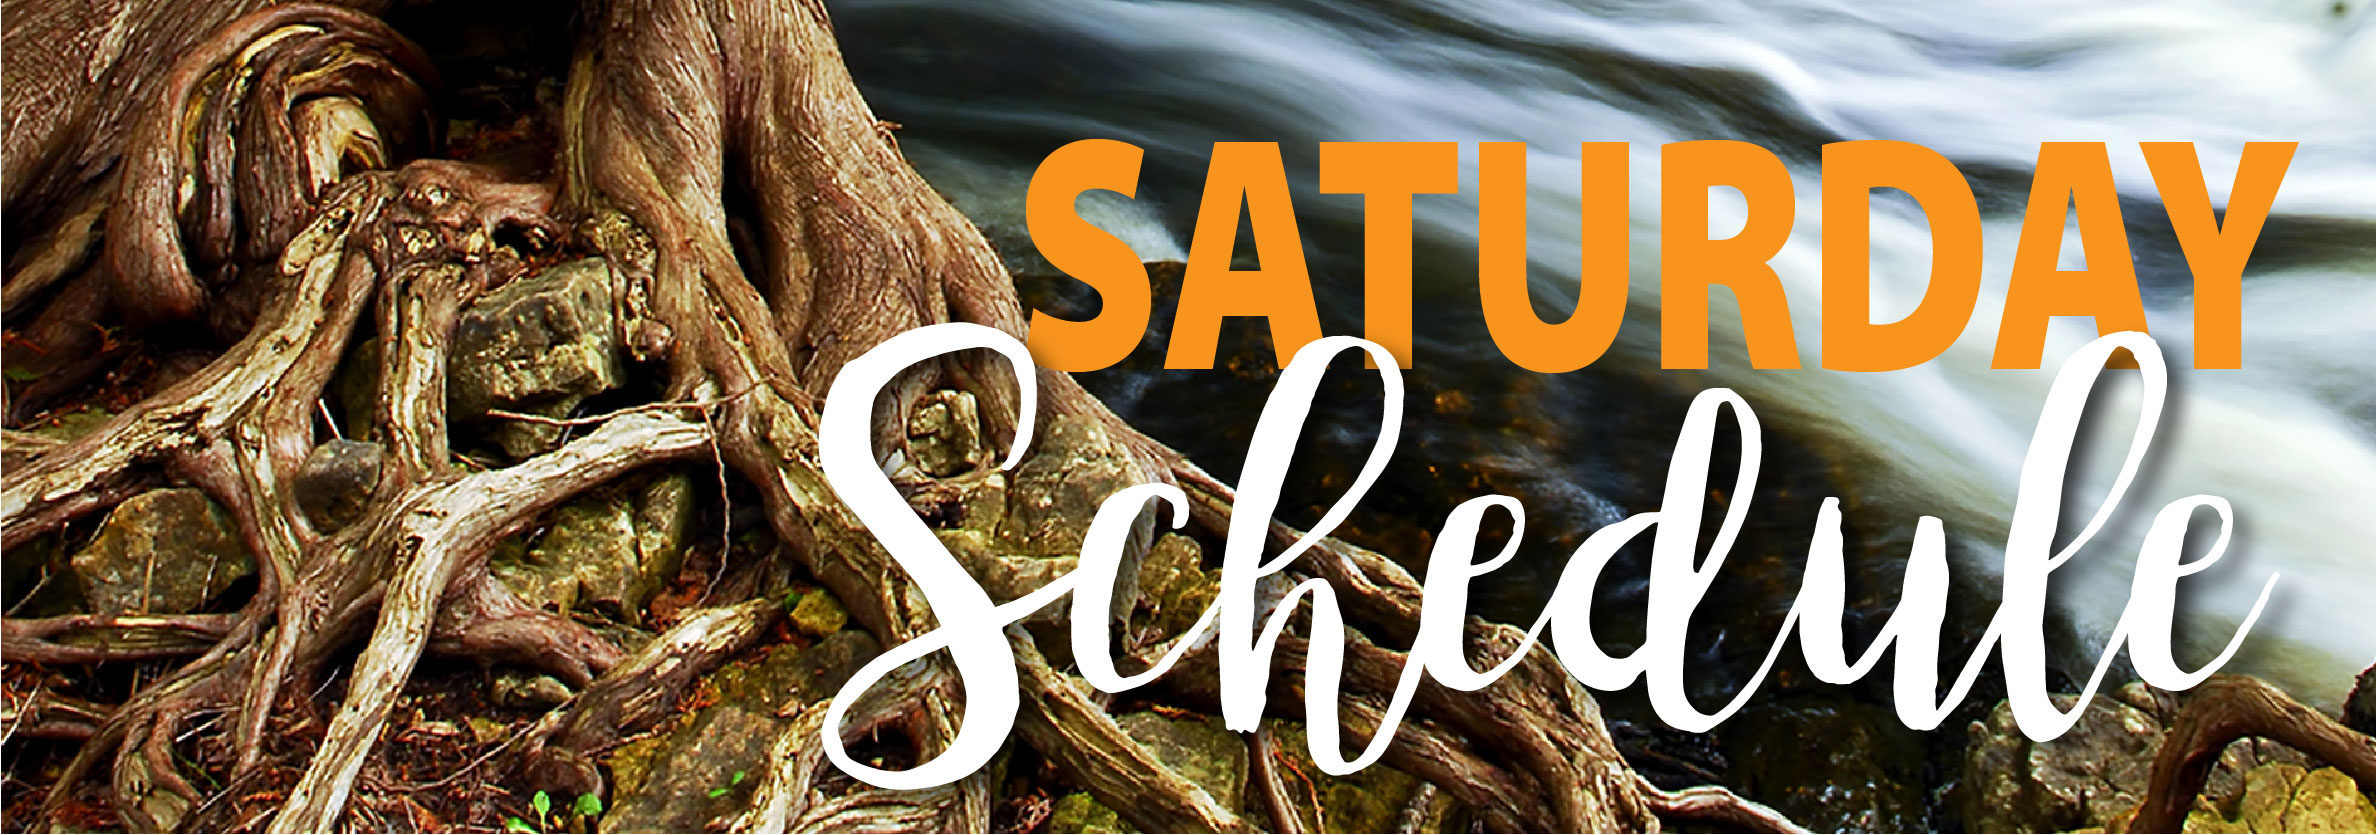 Homeschool Iowa Conference Saturday Schedule